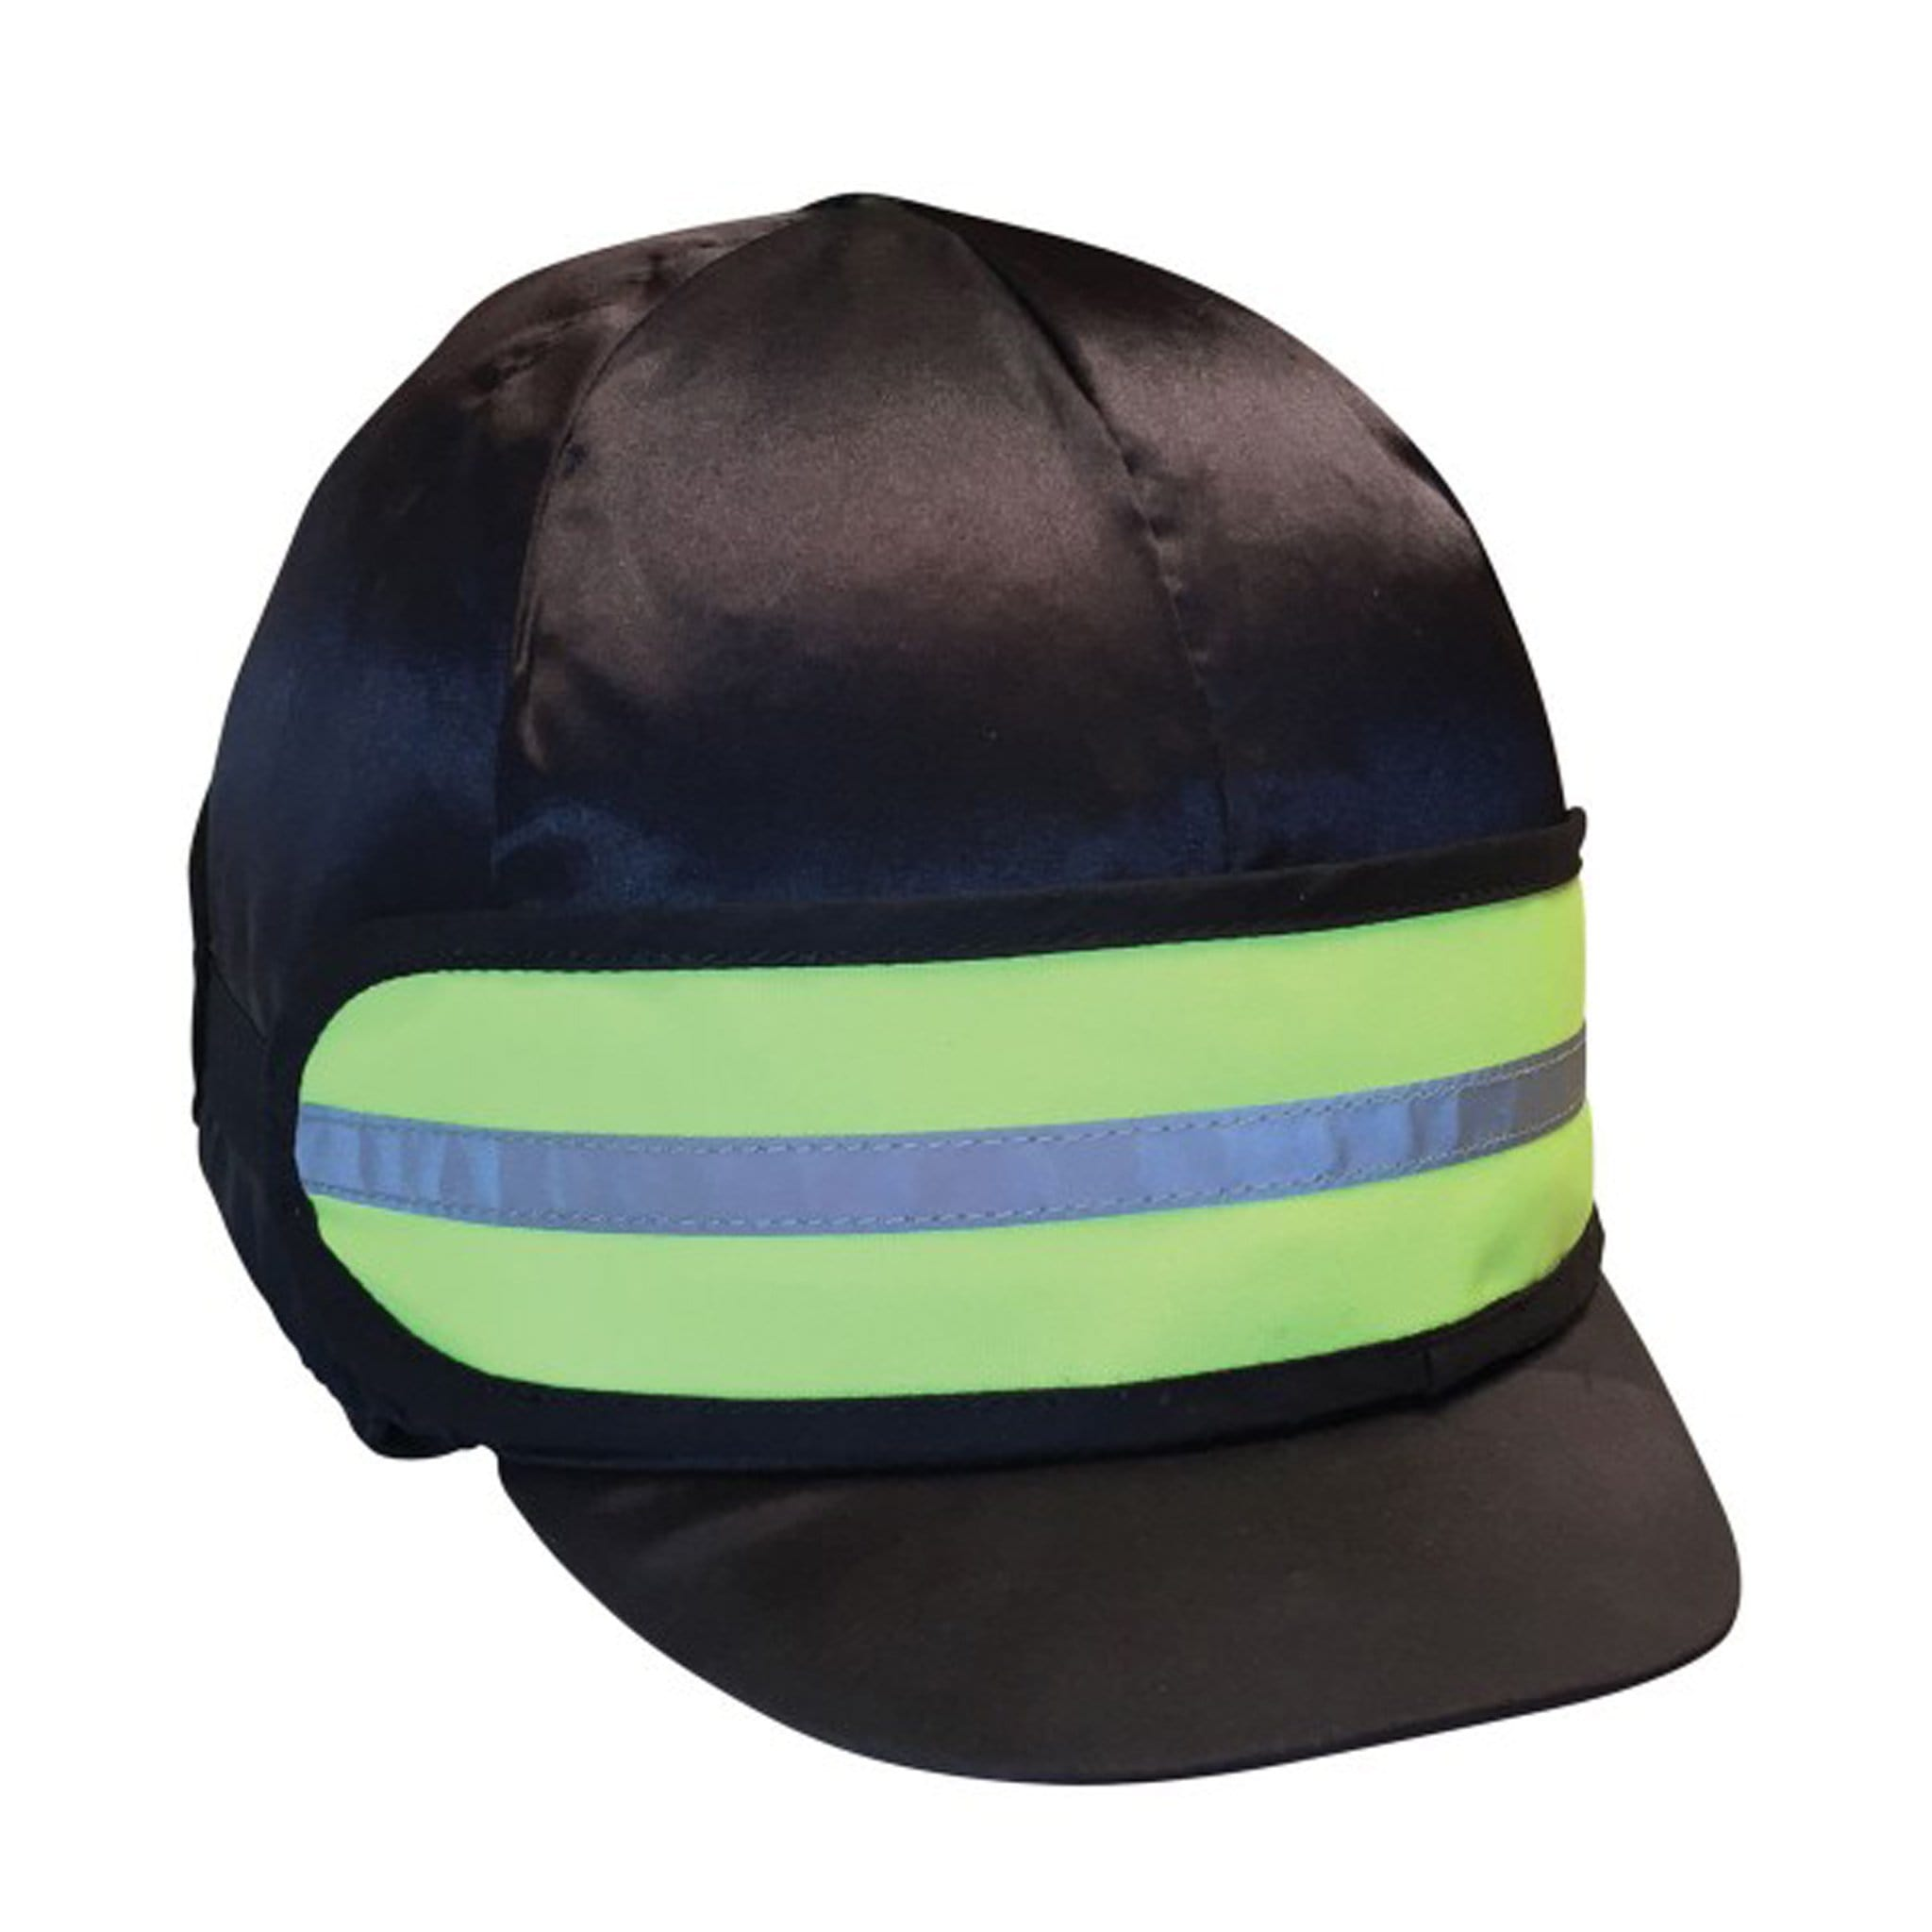 HyVIZ Reflector Elasticated Hat Band Front 13140